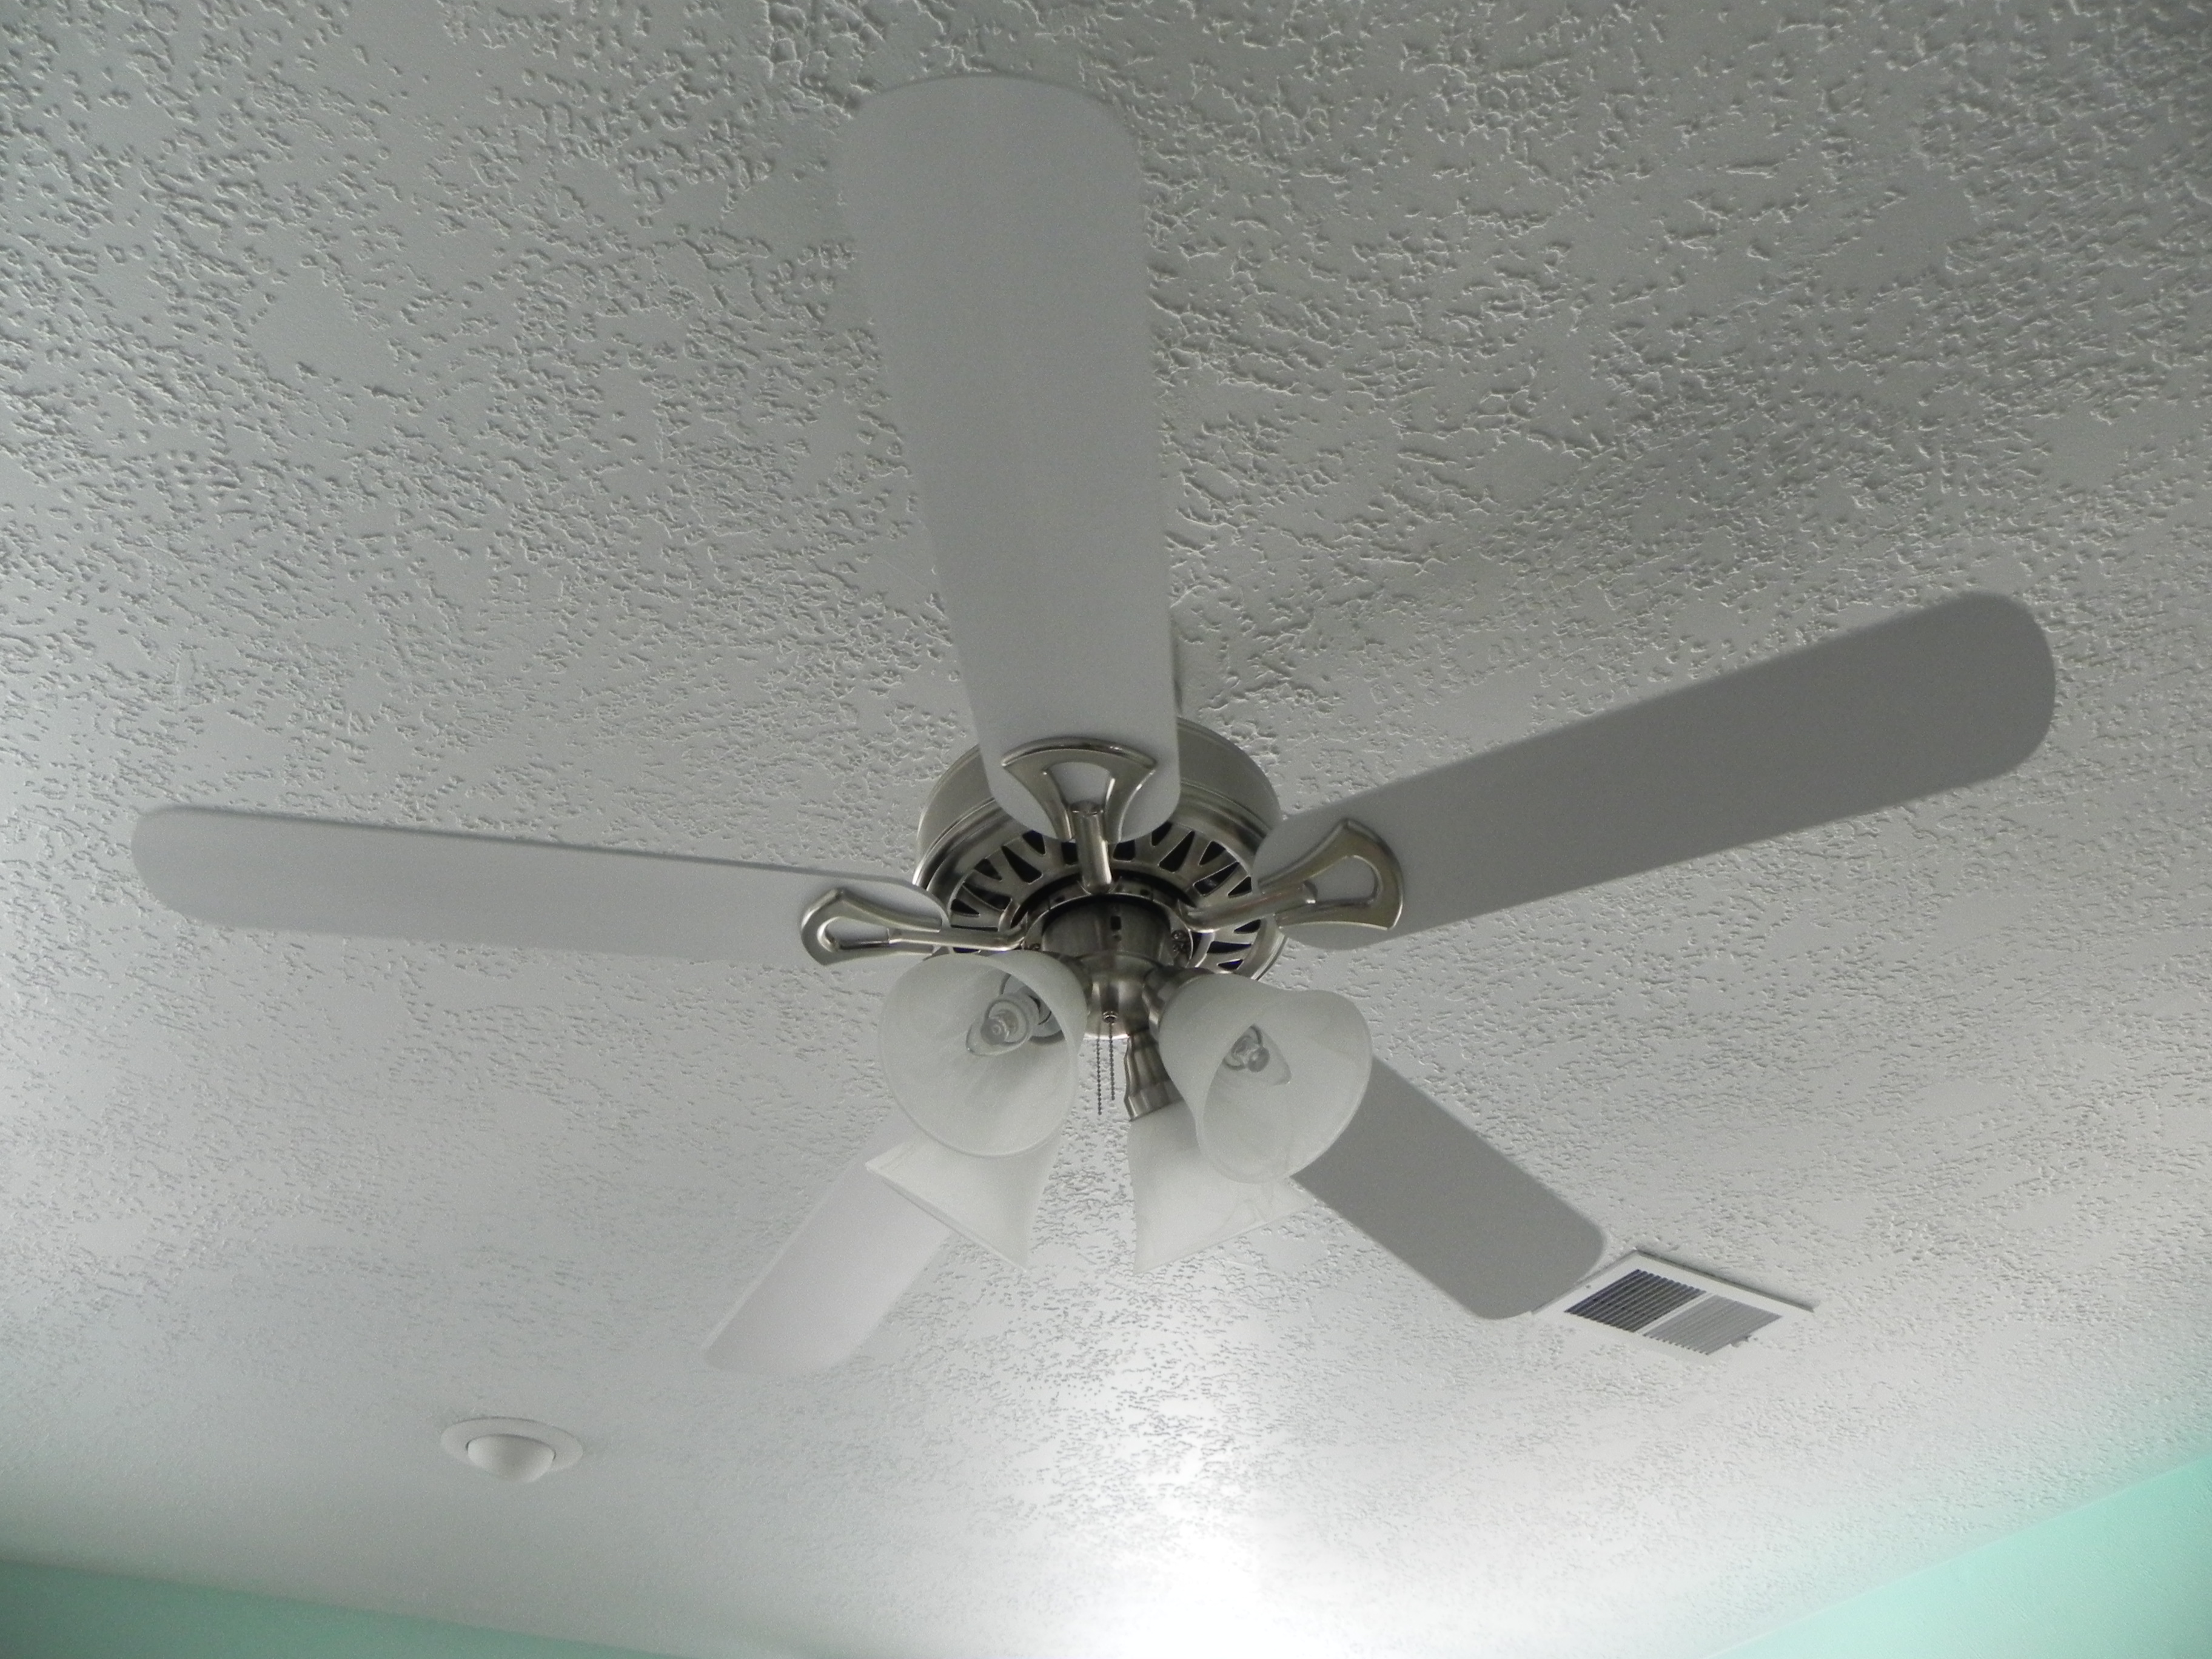 blade pin be ceiling task fan cleaning can a cleaner fans difficult it